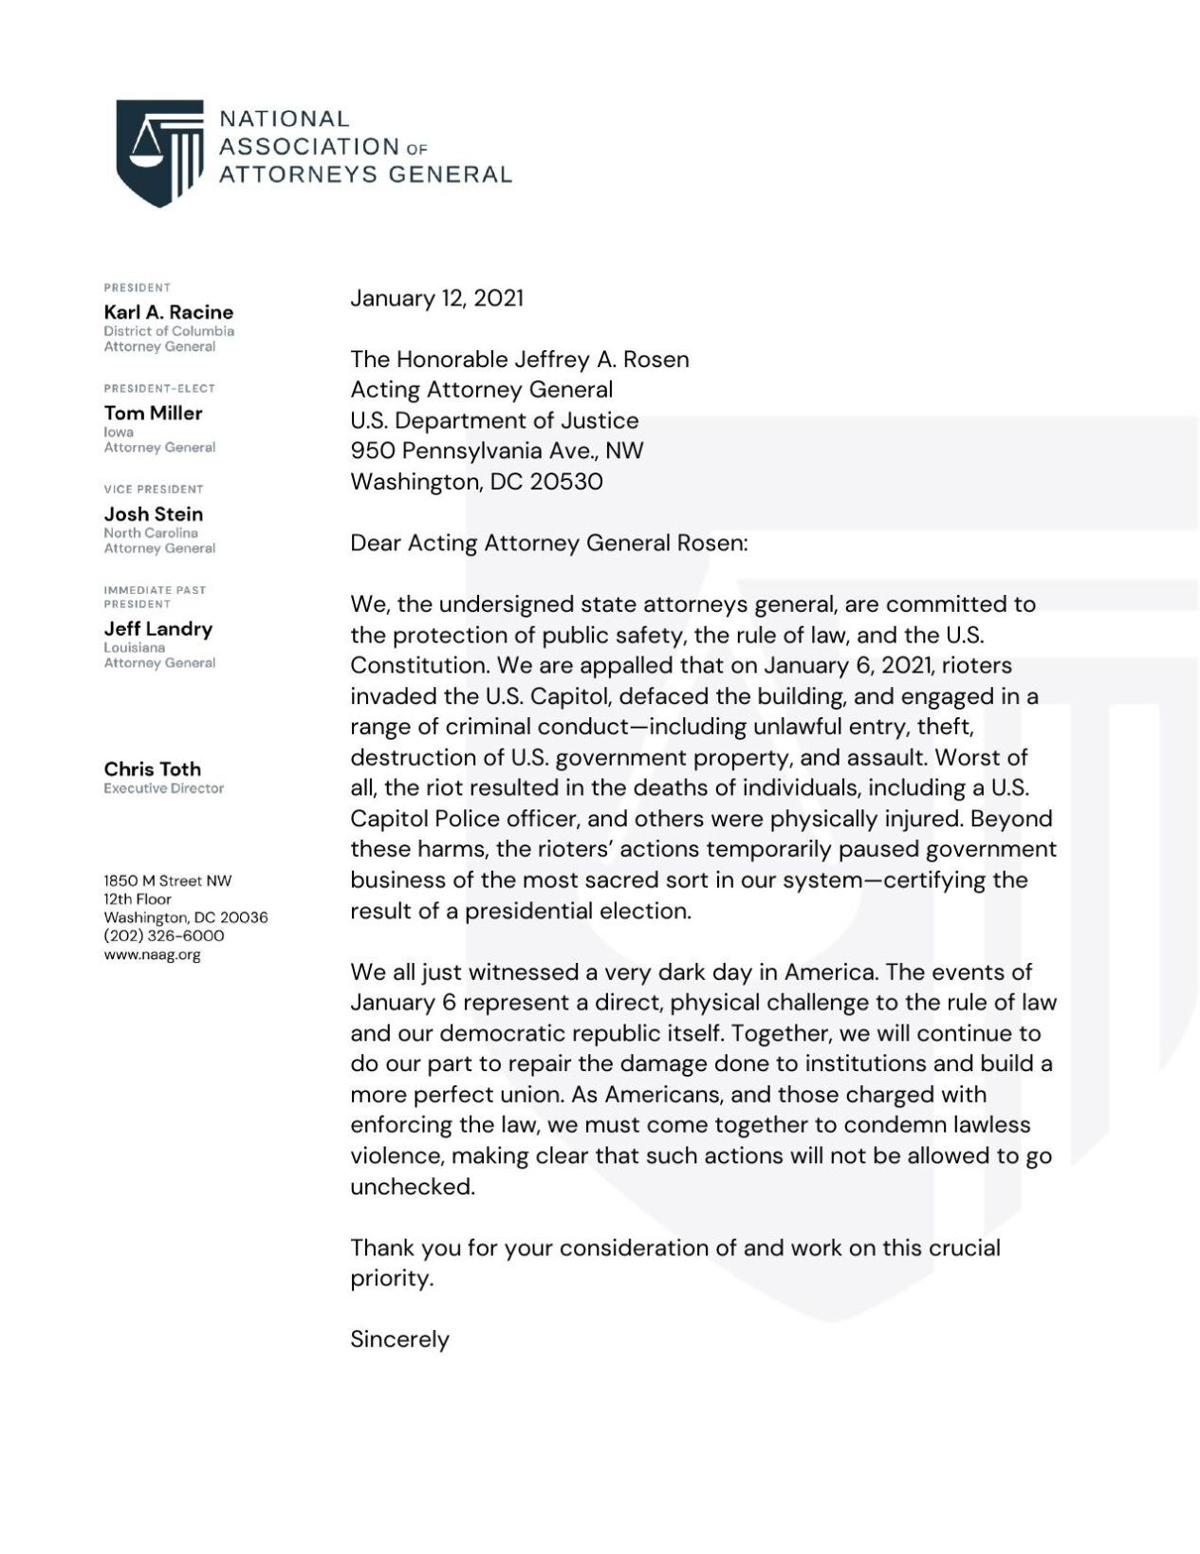 National Association of Attorneys General letter on U.S. Capitol attack